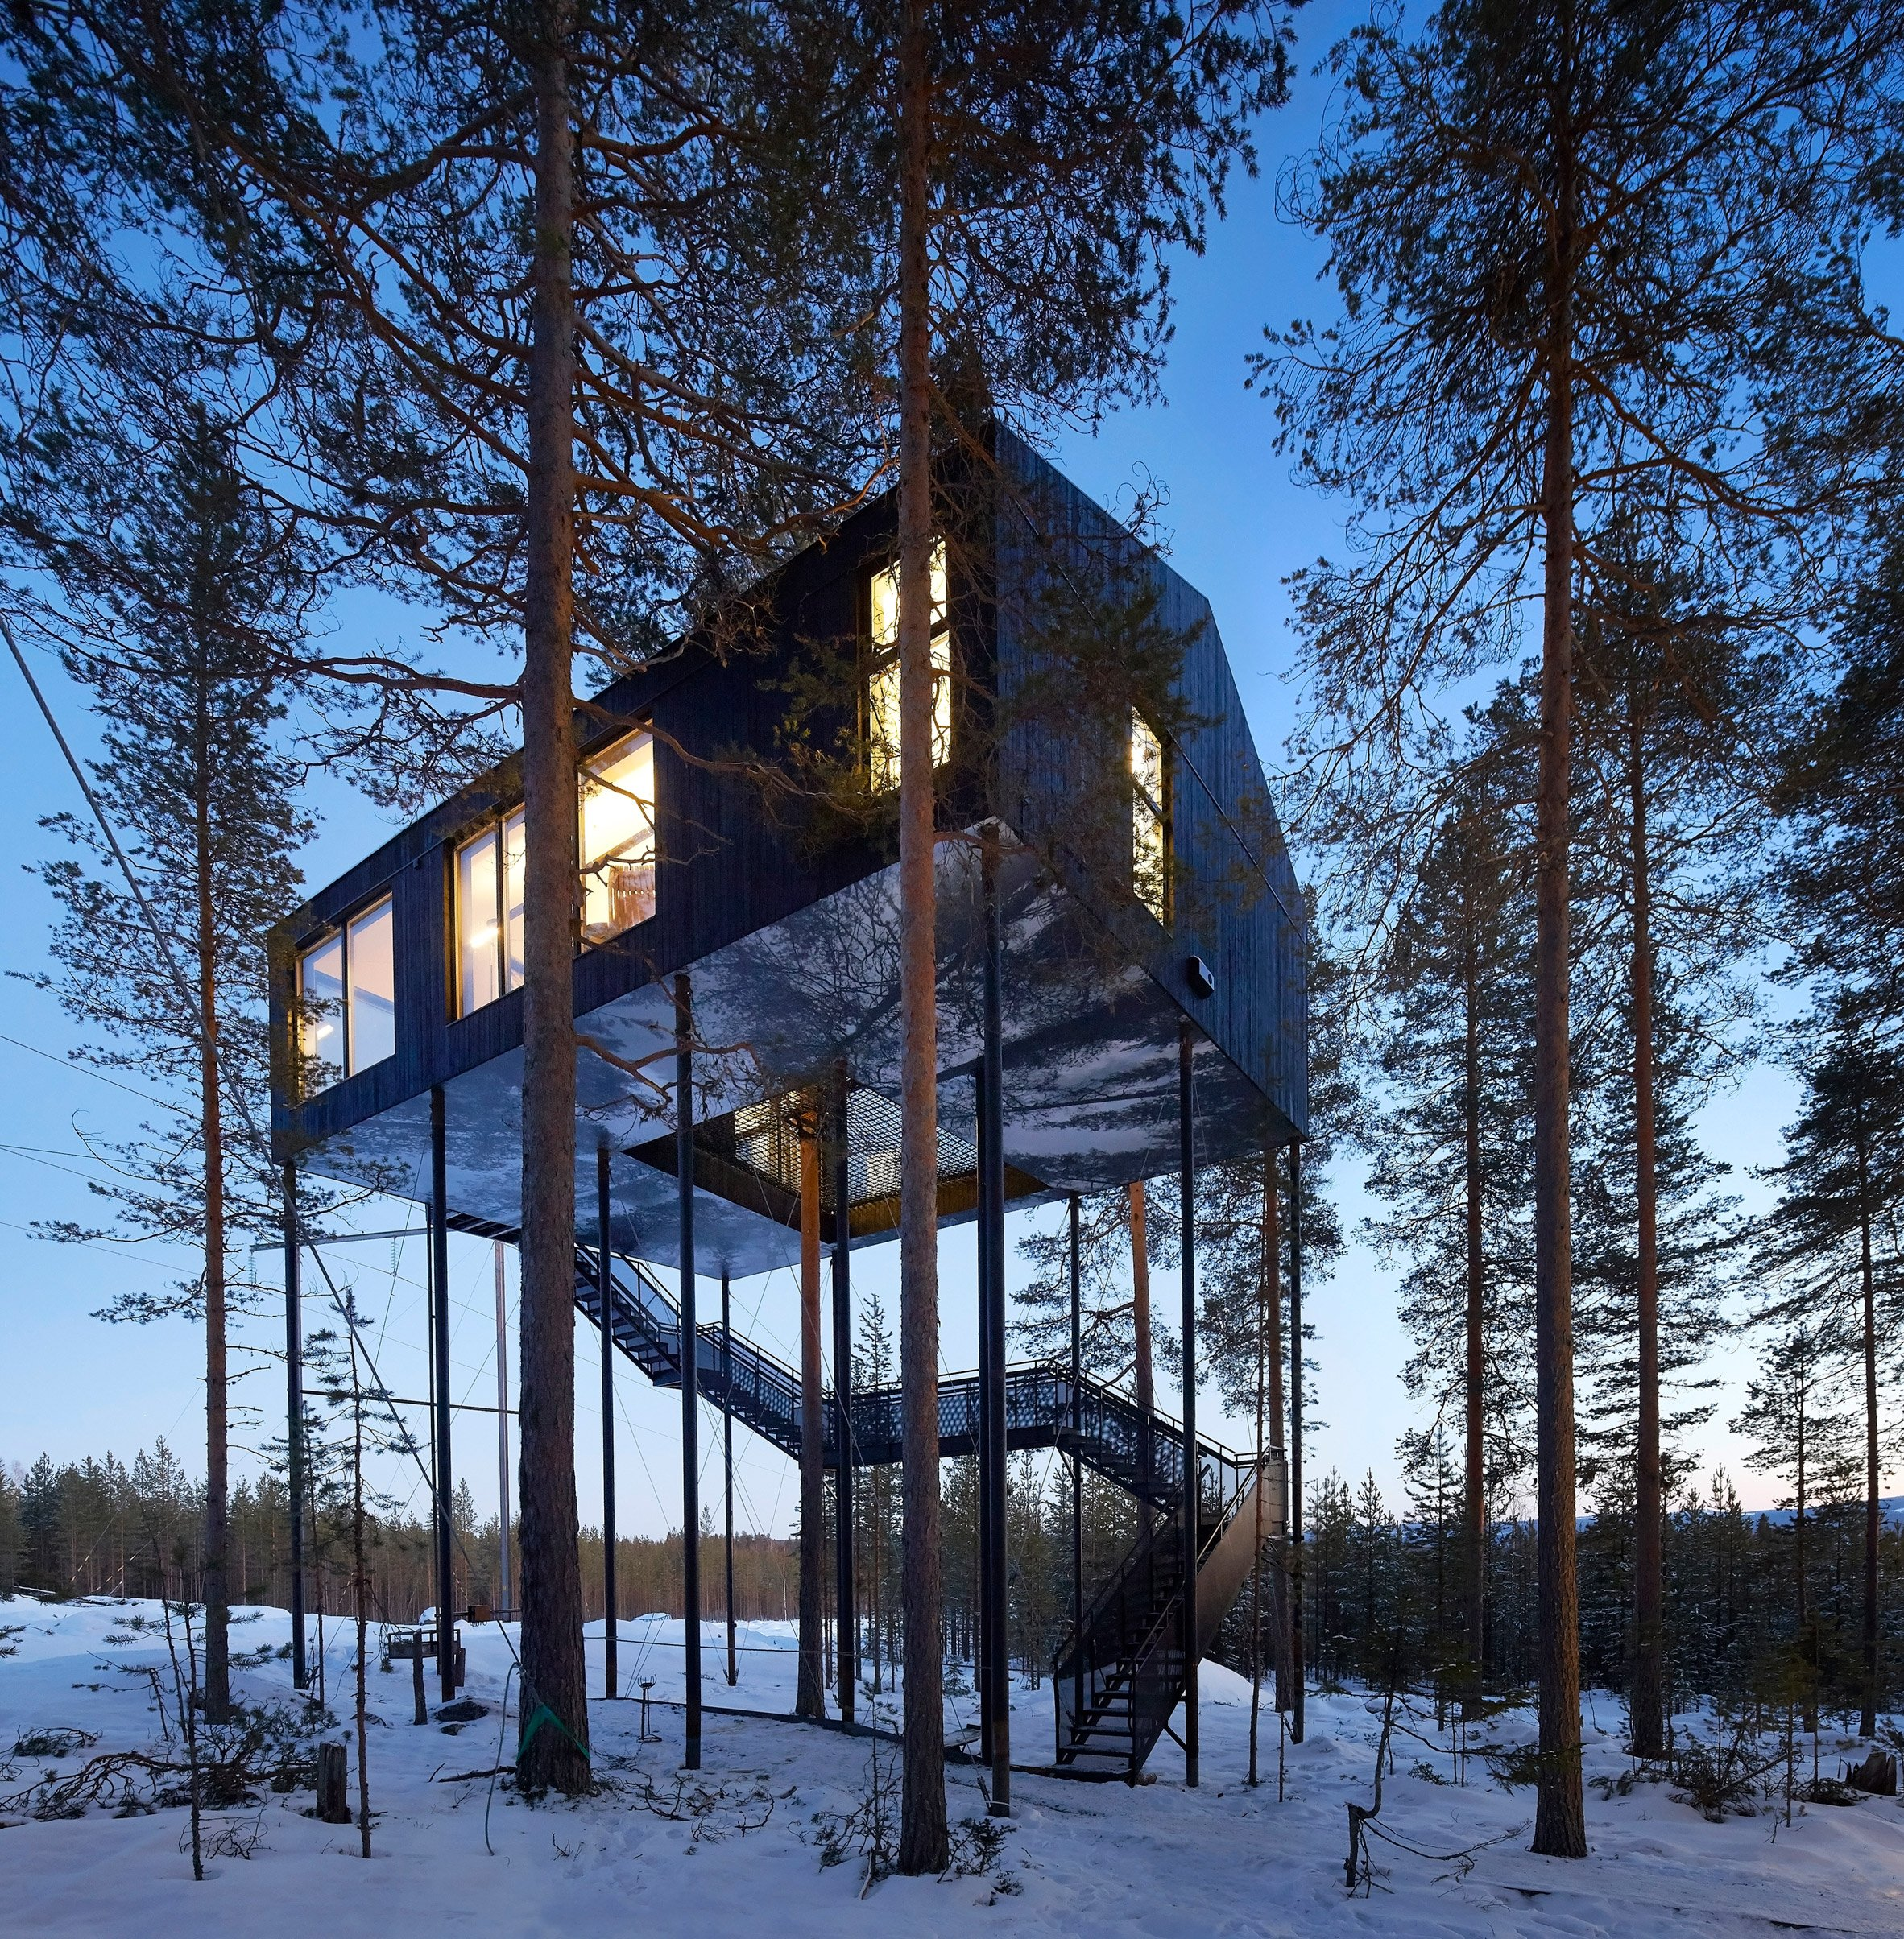 hufton crow s new photographs capture sweden s treehotel at sunrise and dusk. Black Bedroom Furniture Sets. Home Design Ideas